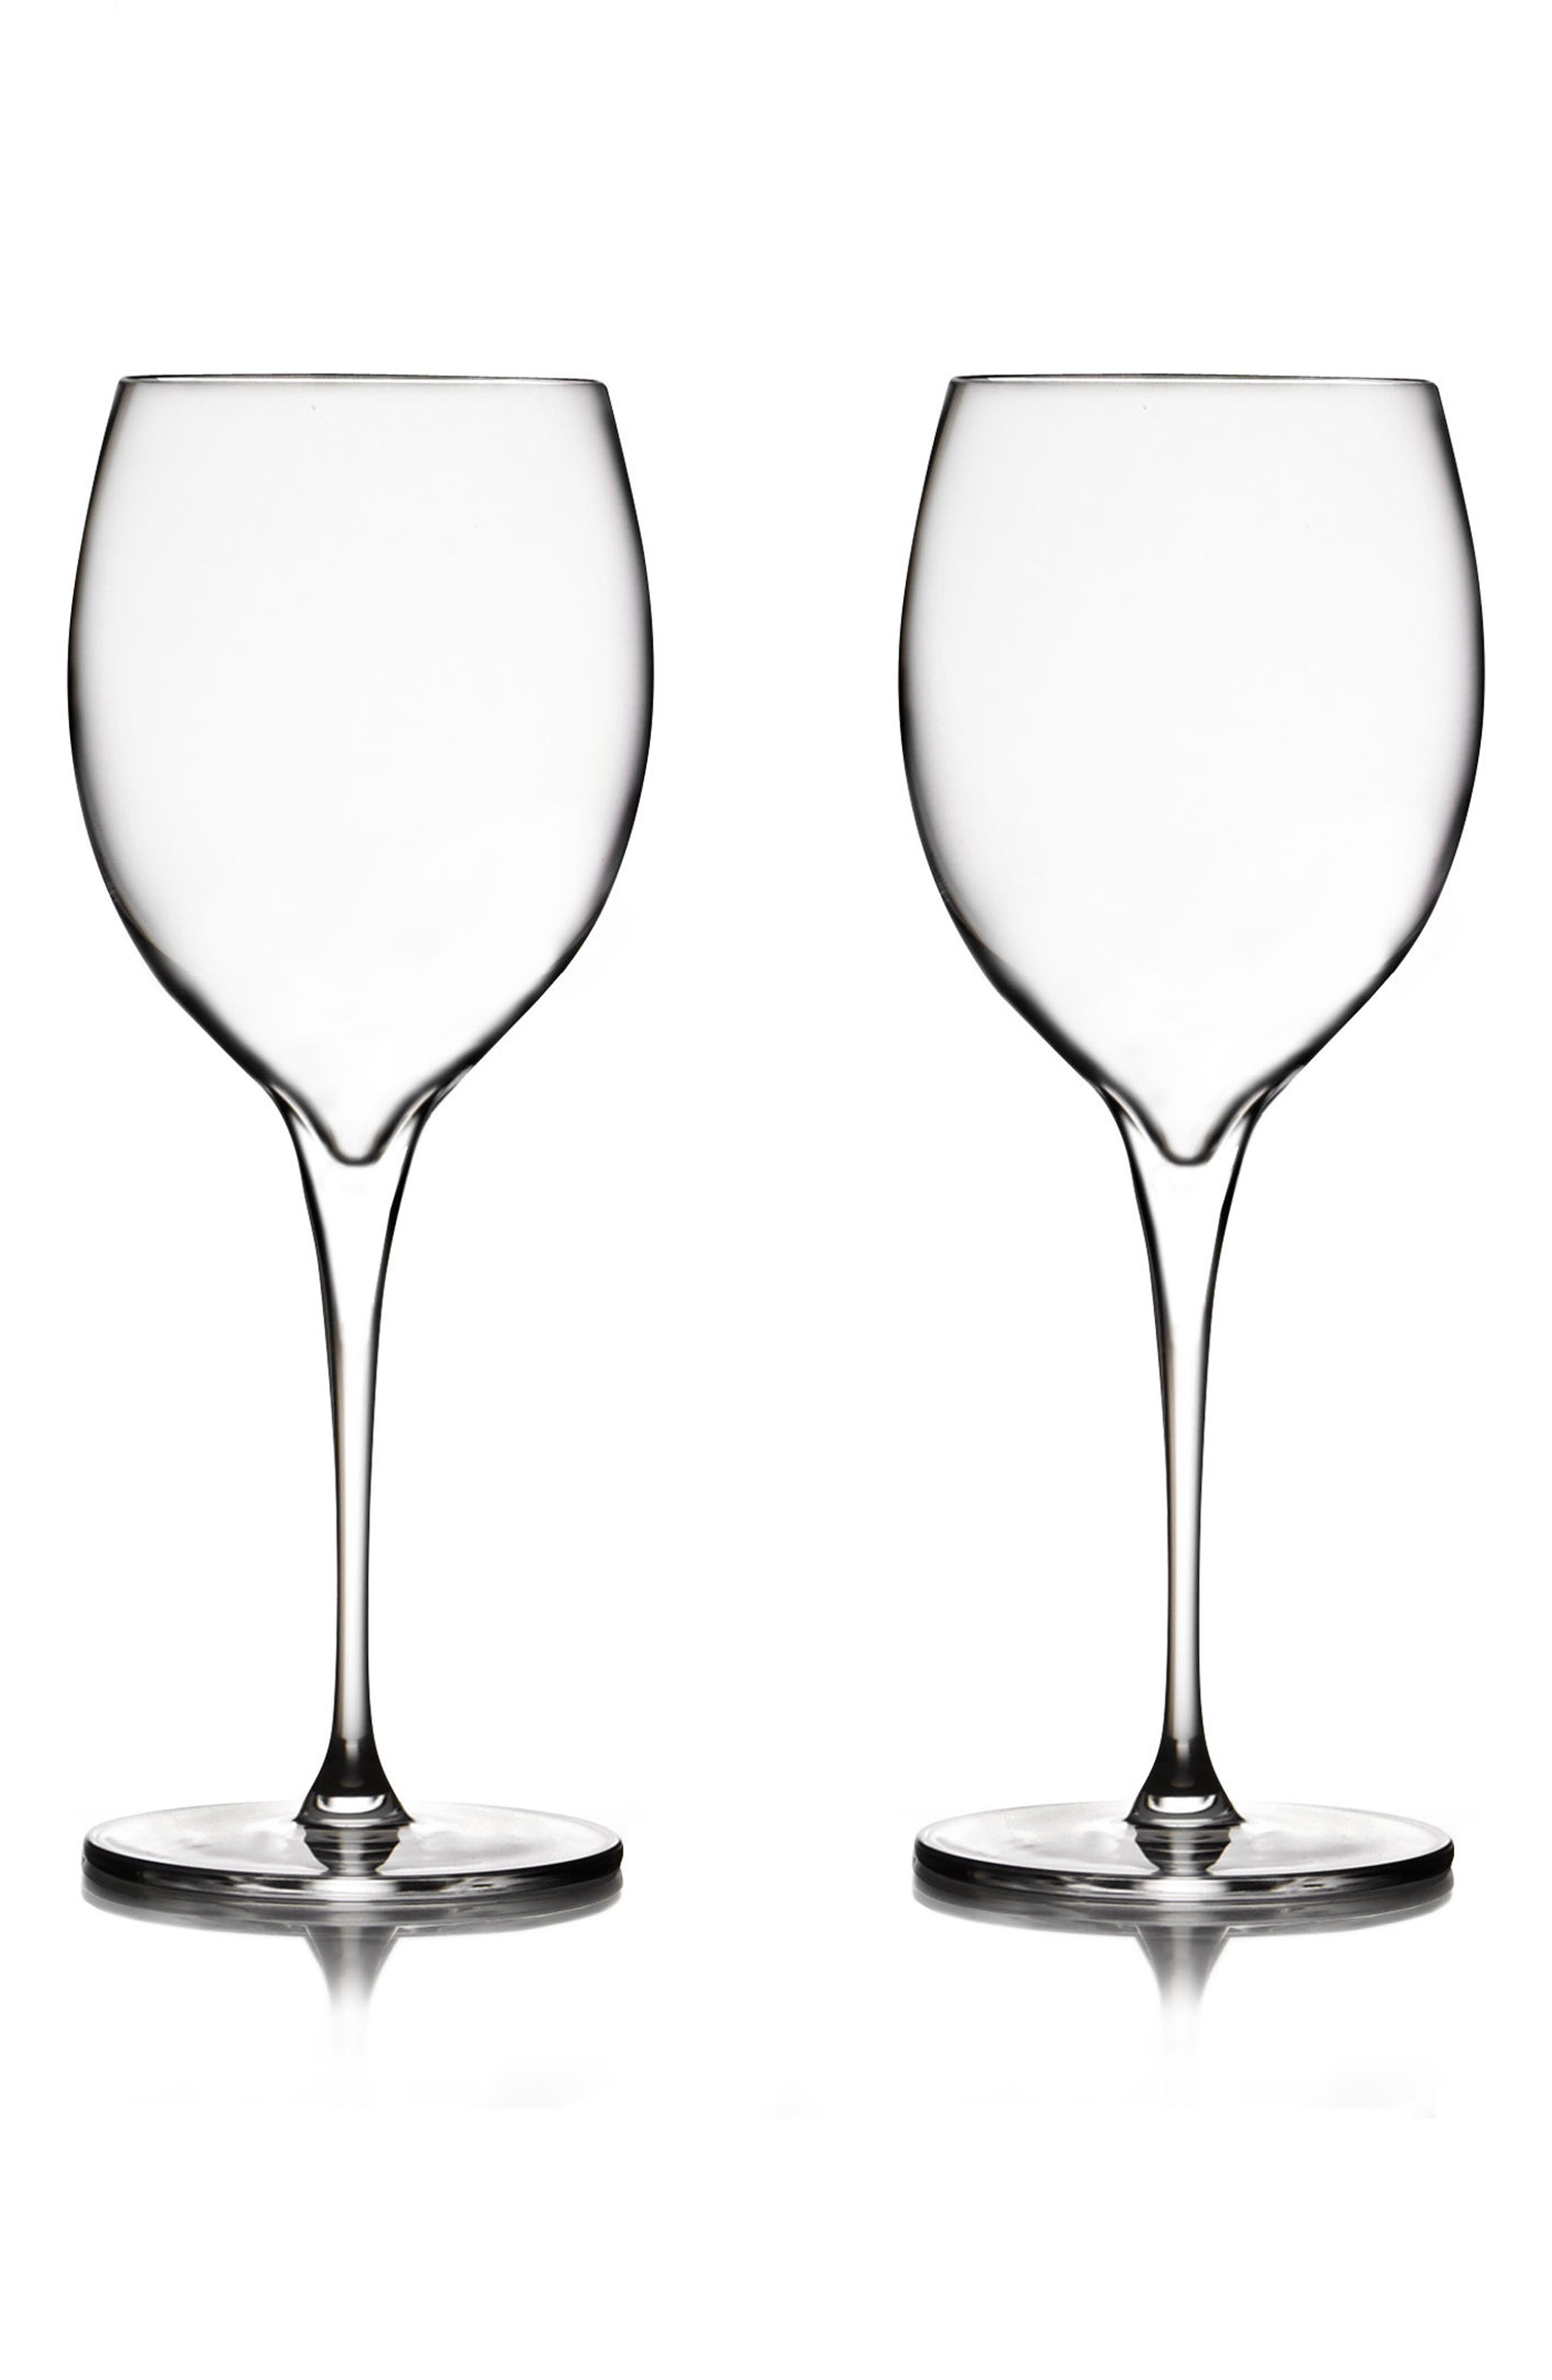 Vie Set of 2 Chardonnay Glasses,                         Main,                         color, Clear